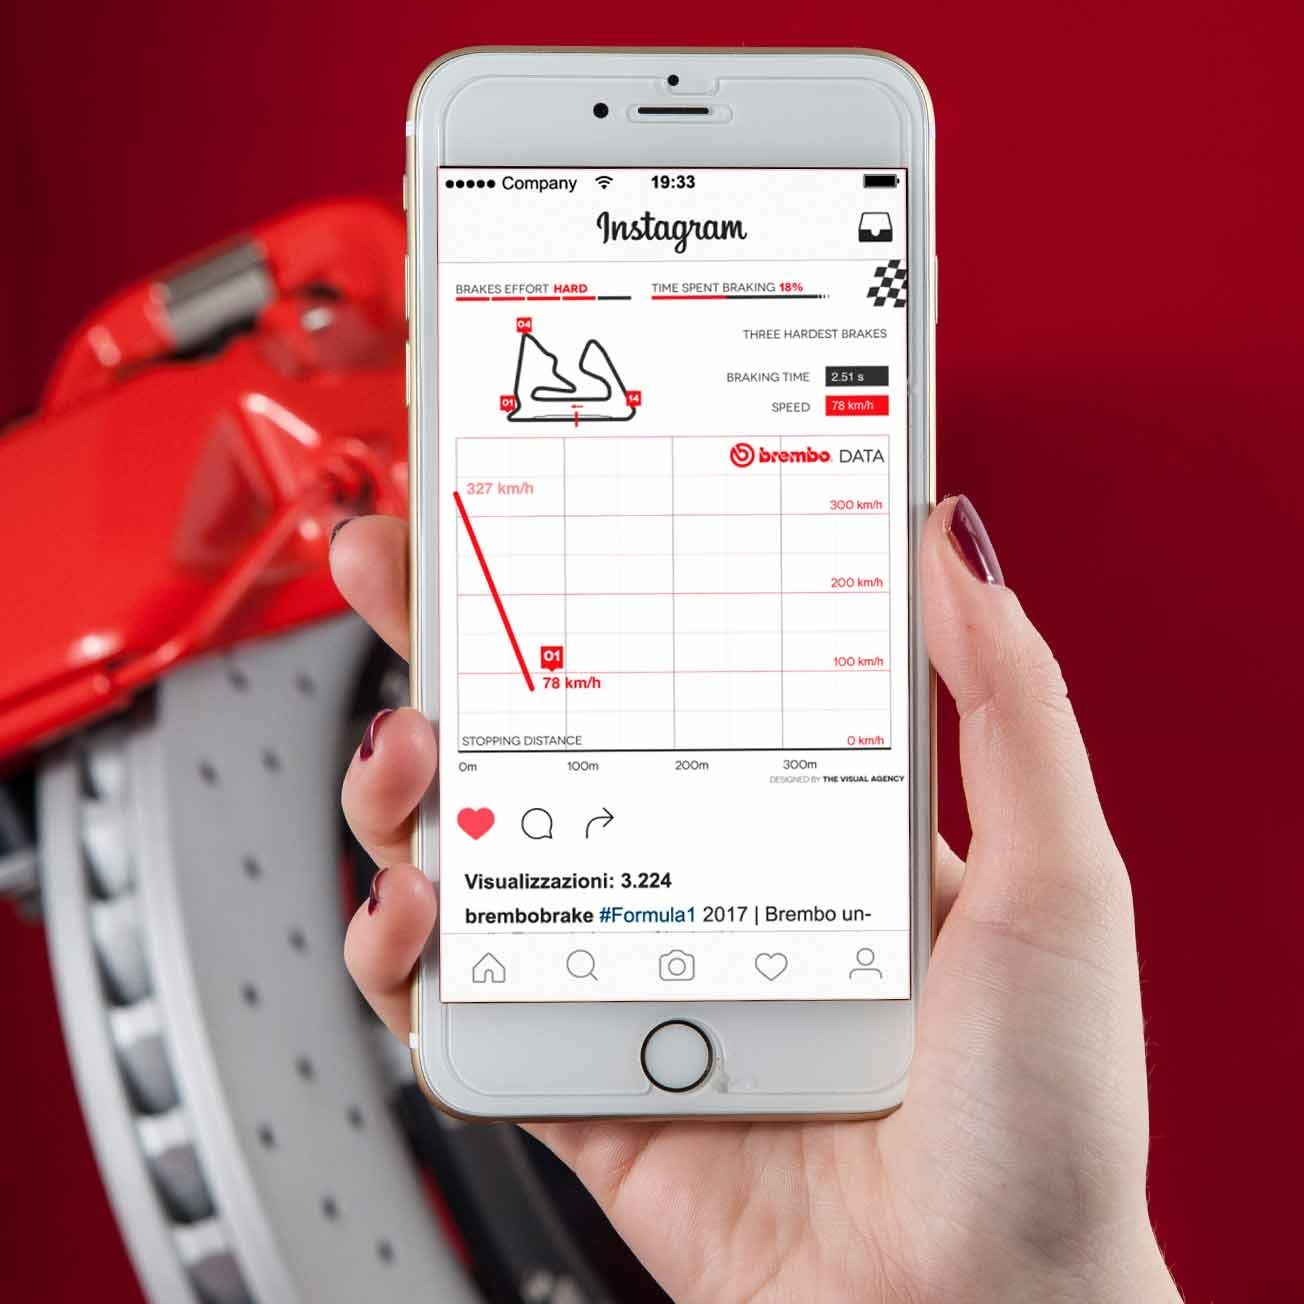 Picture brembo infographic hand with smartphone